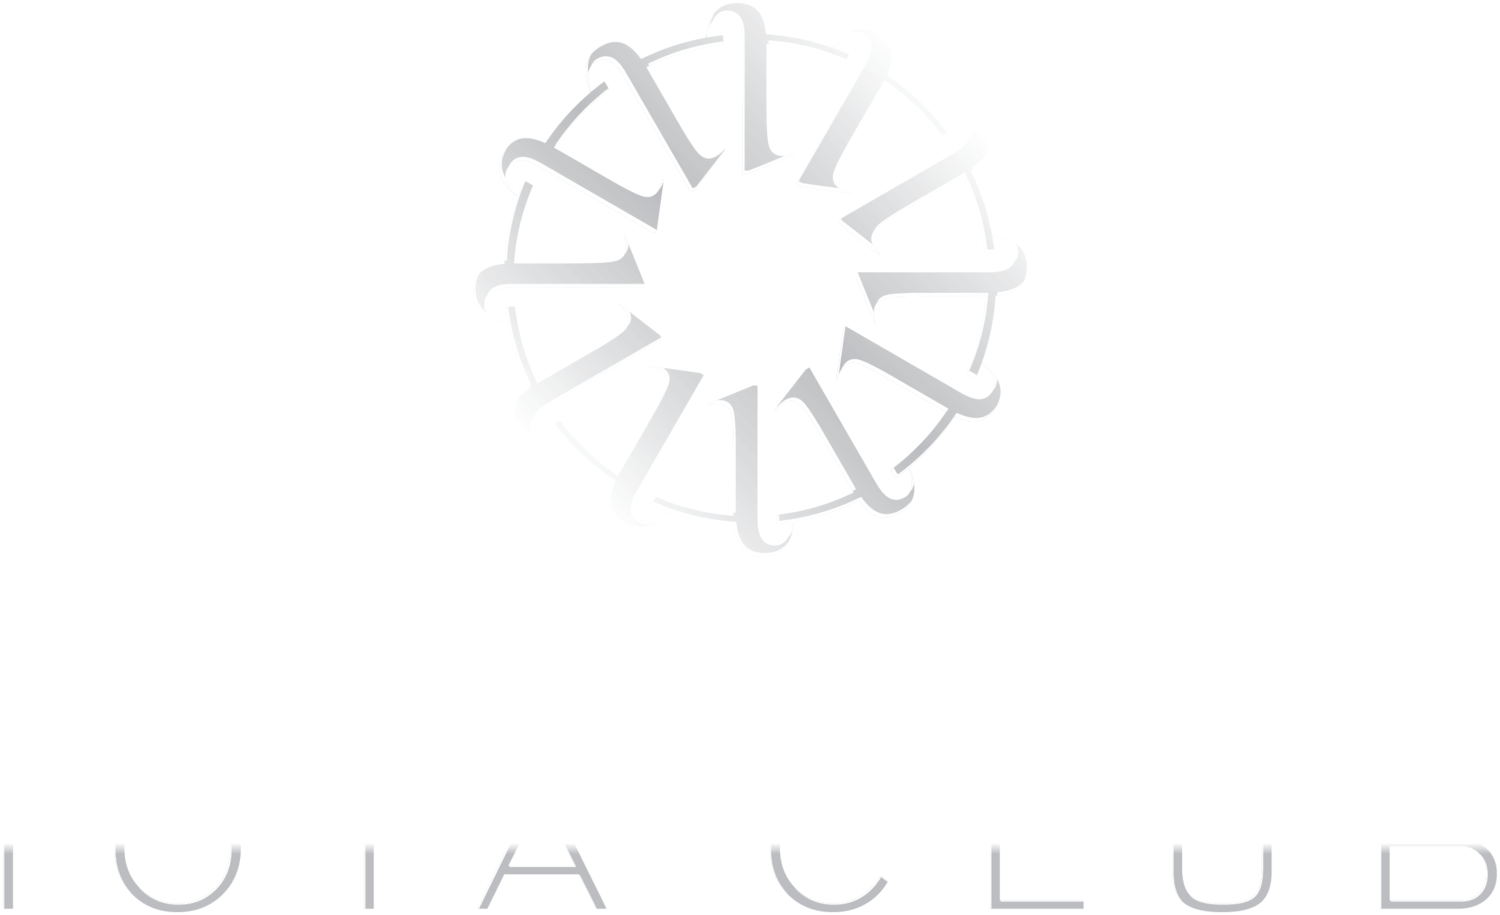 The Iota Club